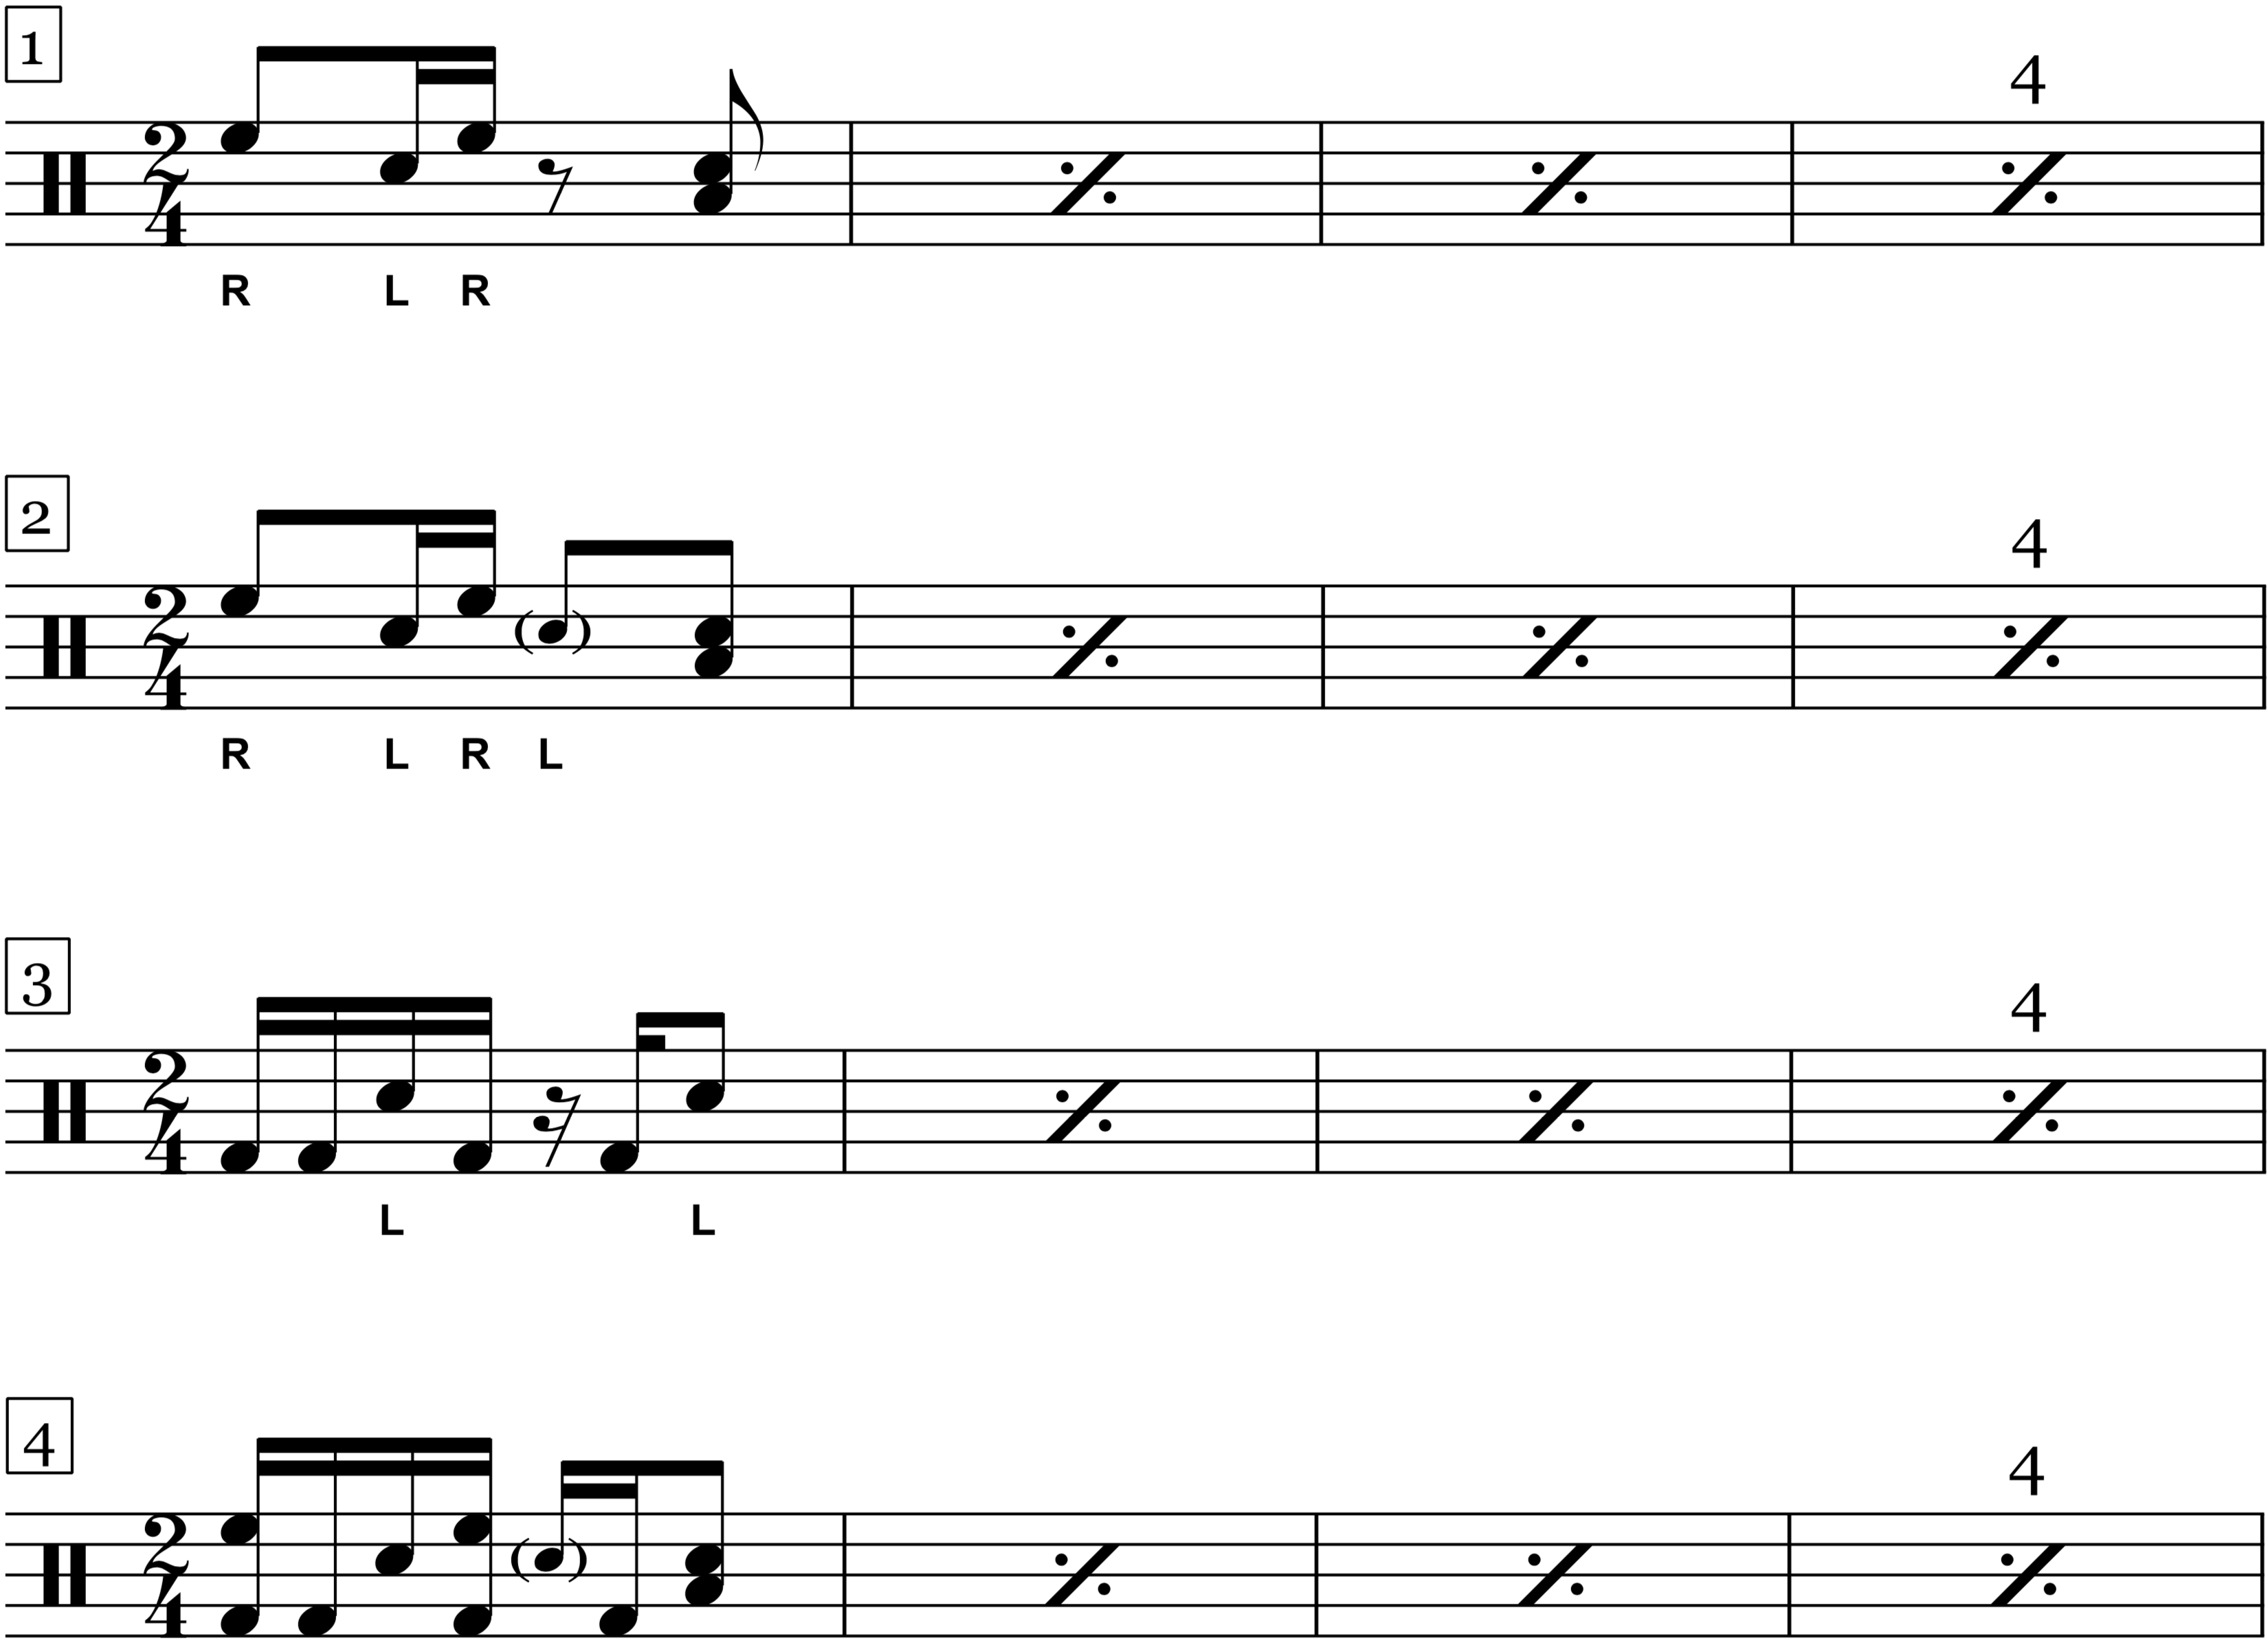 Should I Stay Or Should I Go - The Clash - Drum Sheet Music